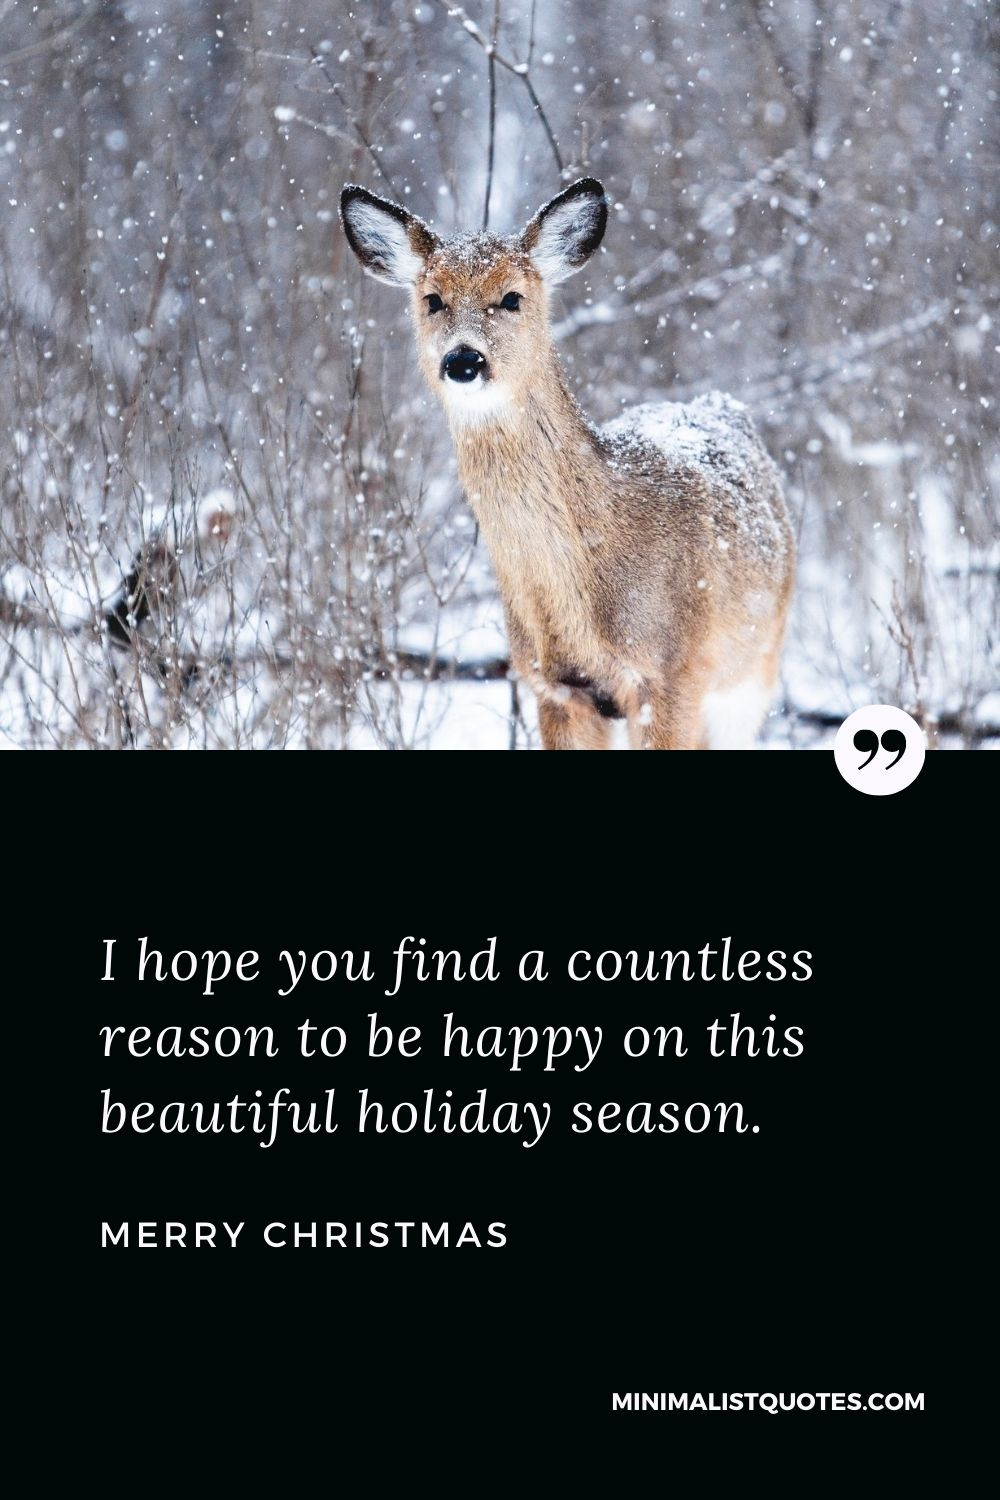 Merry Christmas Wish - I hope you find a countless reason to be happy on this beautiful holiday season.